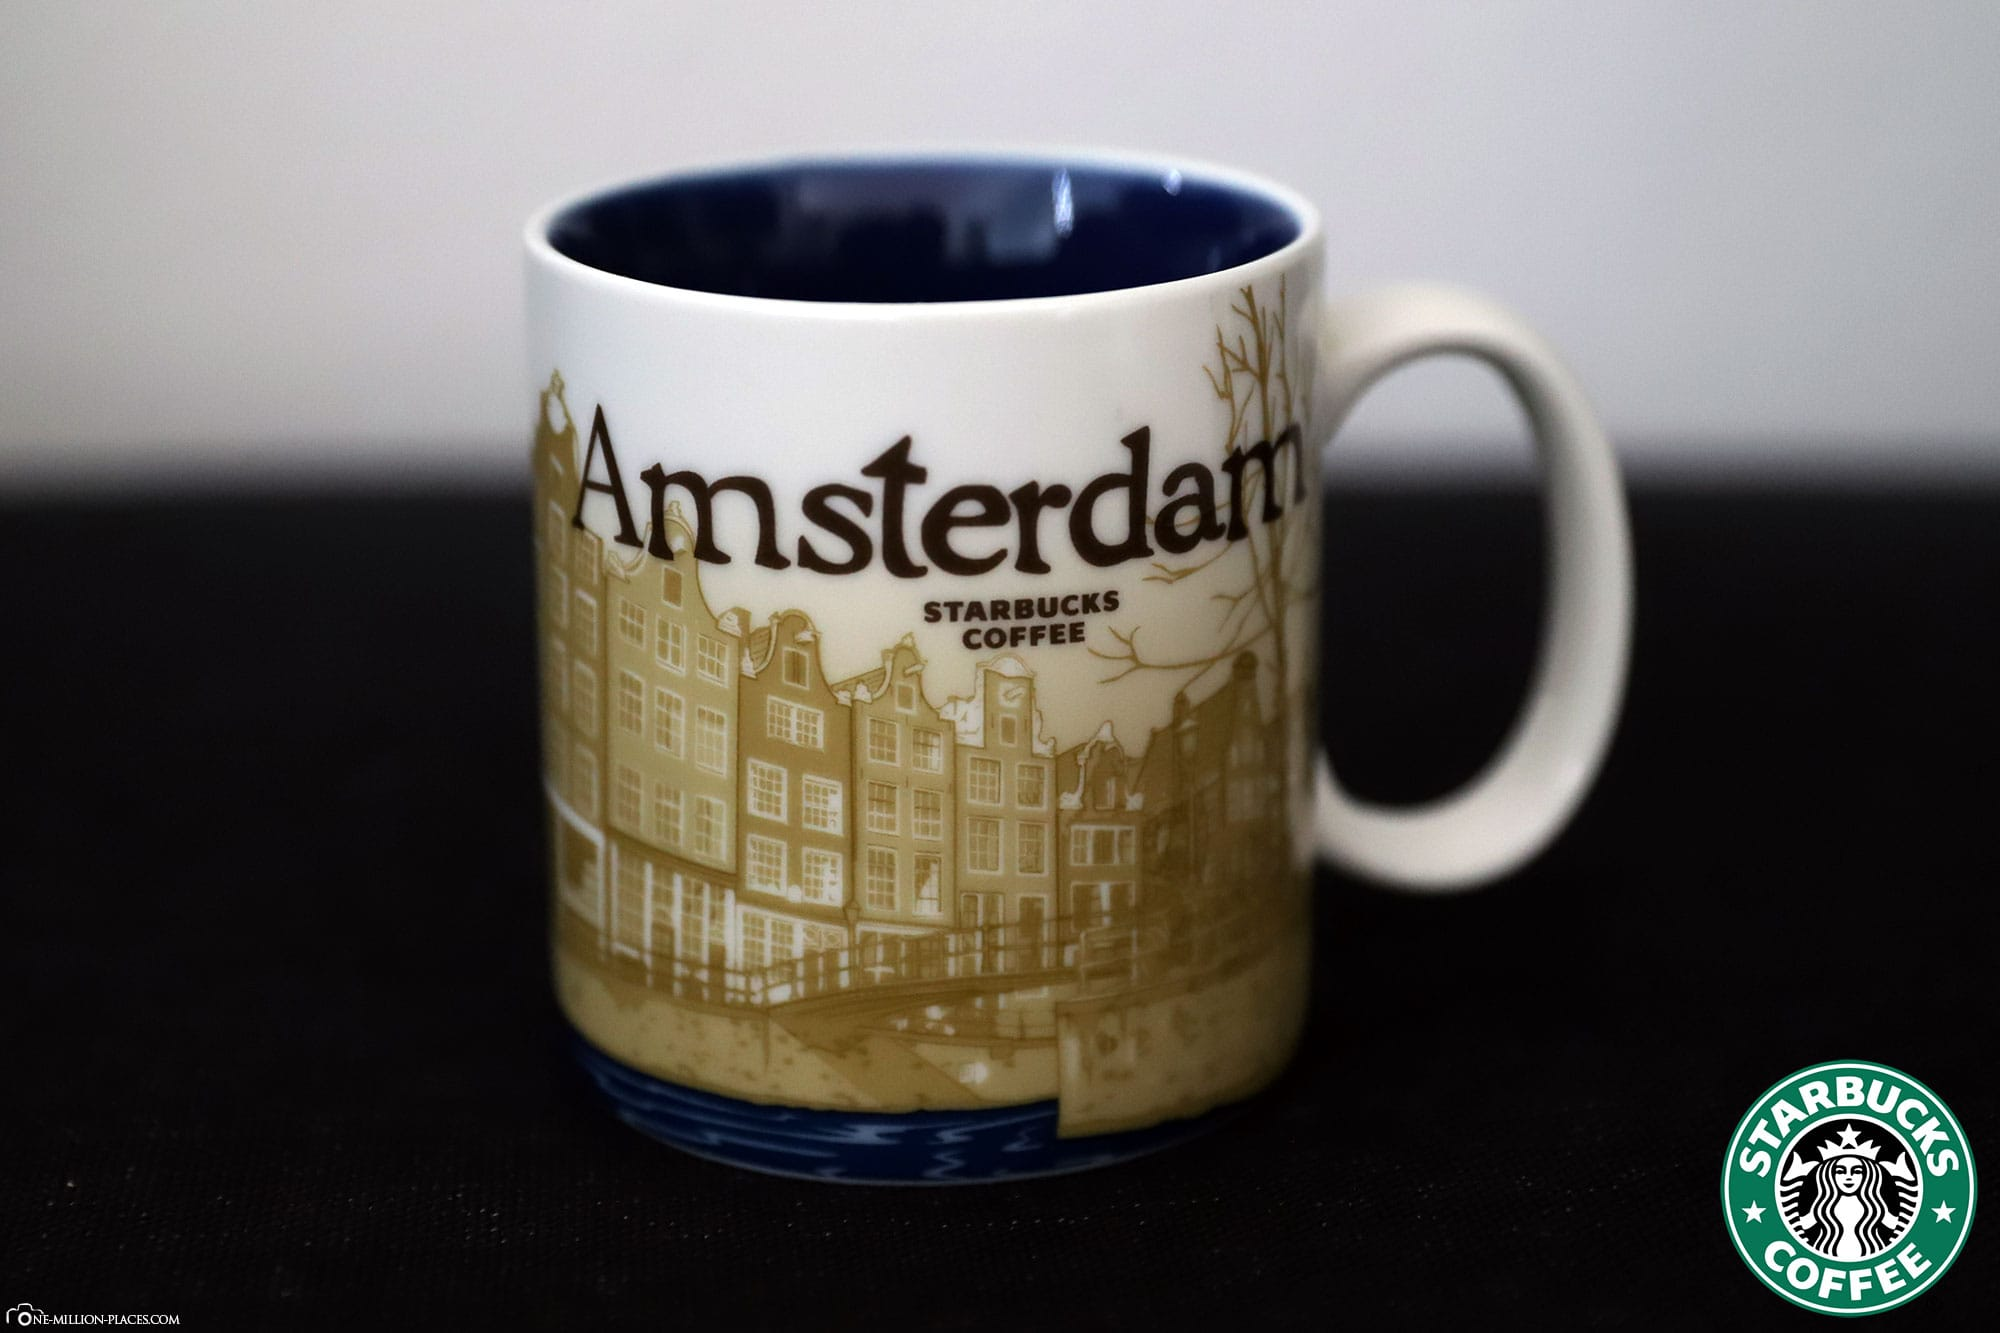 Amsterdam, Starbucks Cup, Global Icon Series, City Mugs, Collection, Netherlands, Travelreport